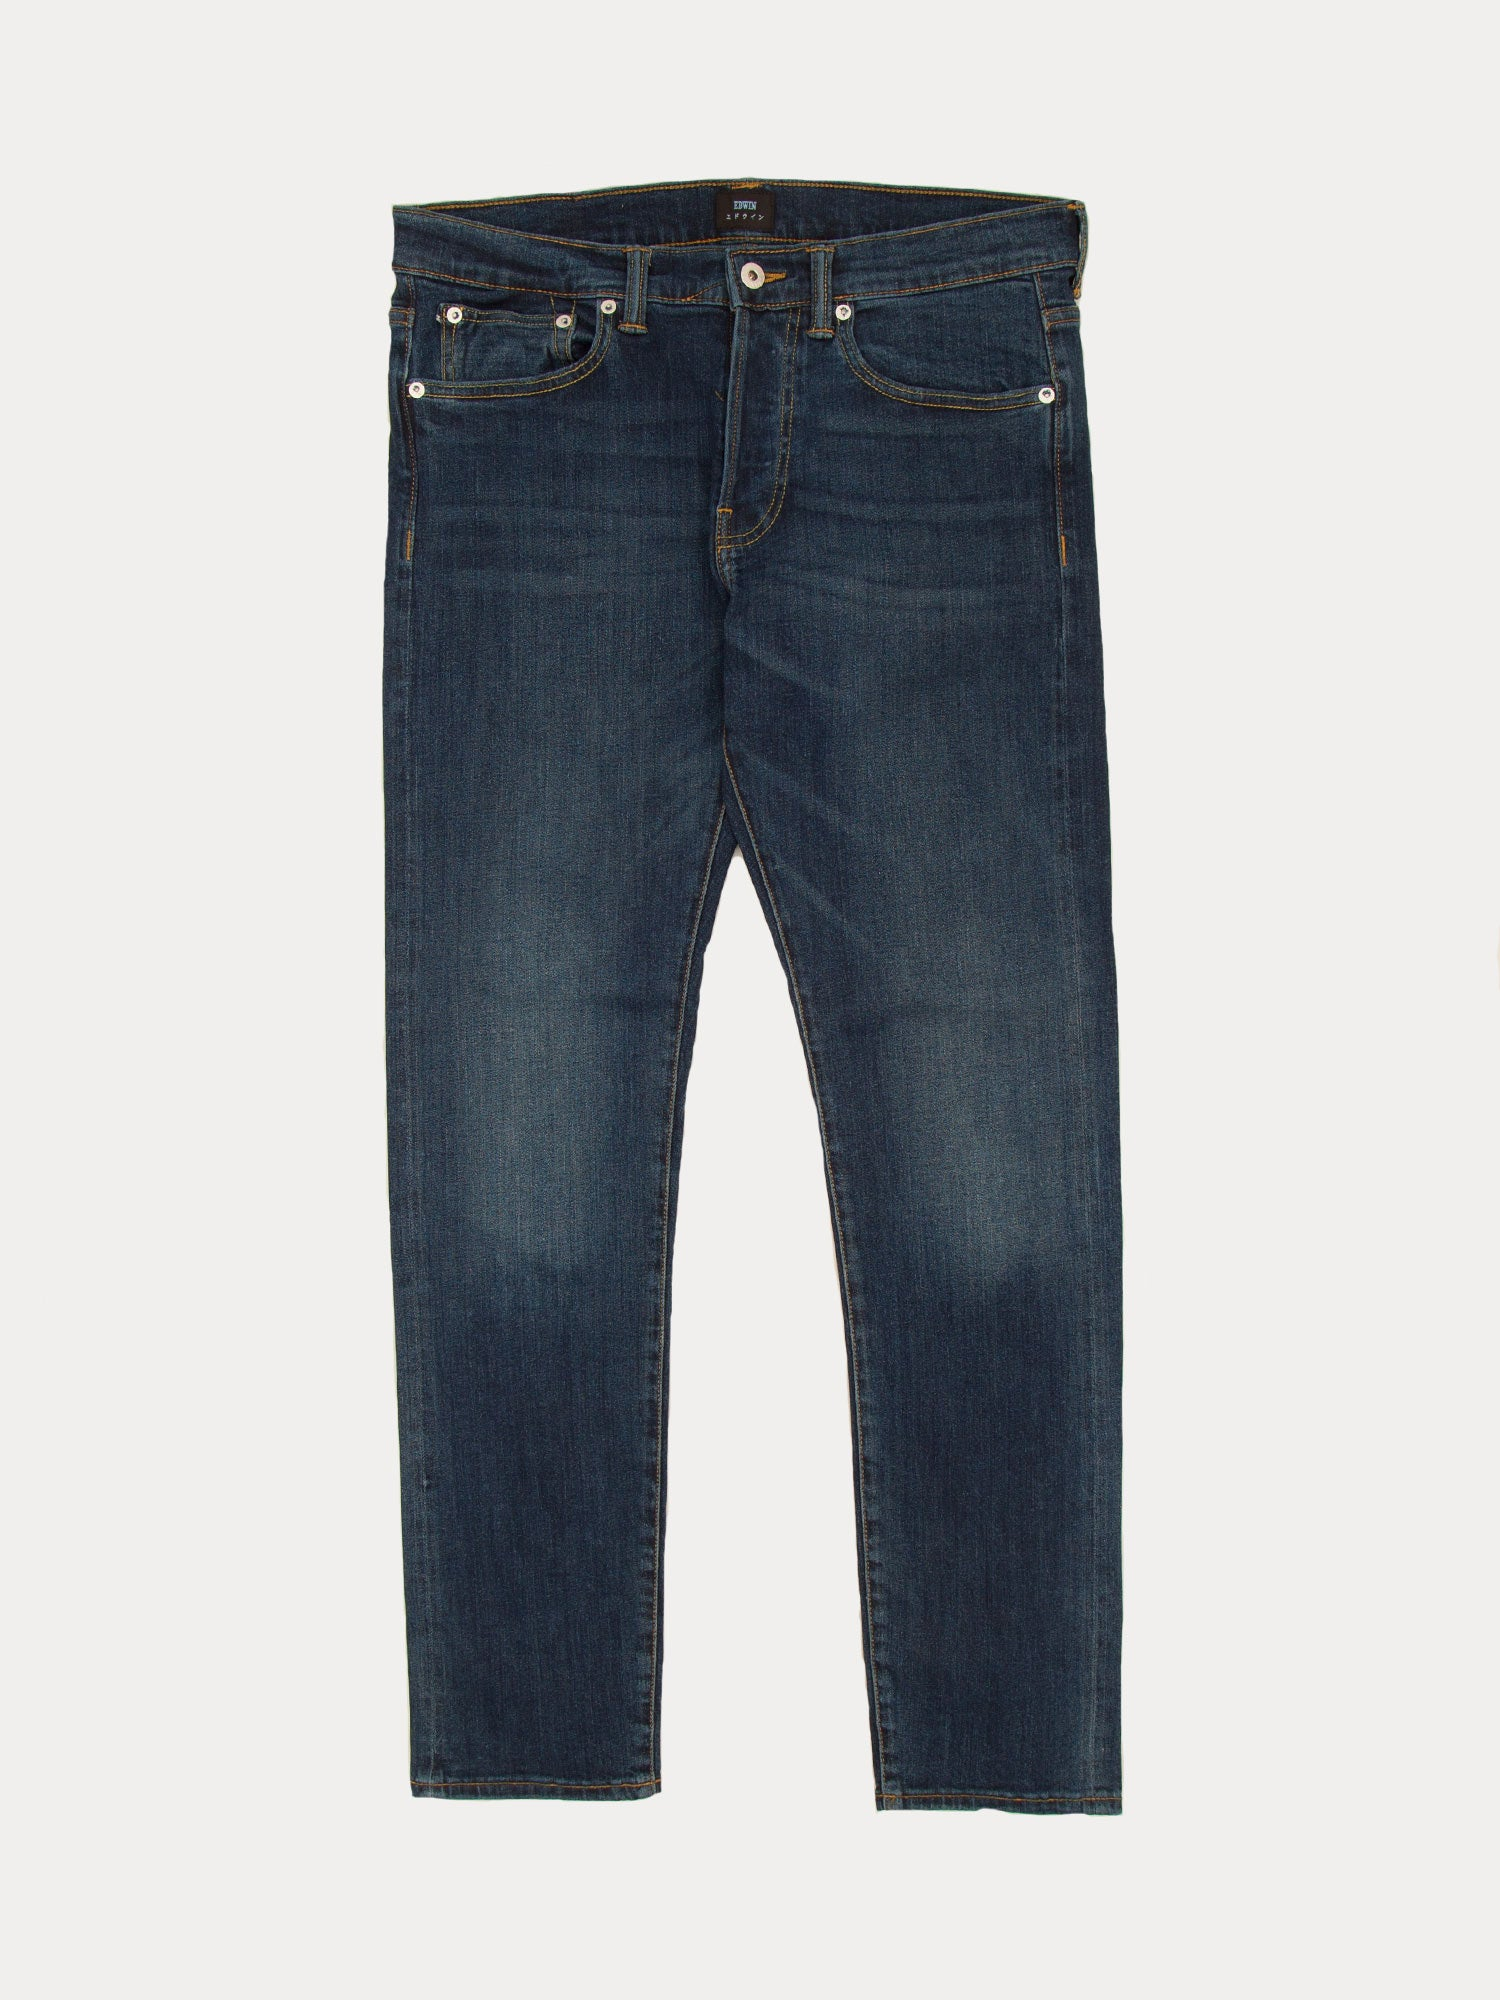 Edwin ED-80 10.5oz Red Selvage Jeans (Blast Wash)